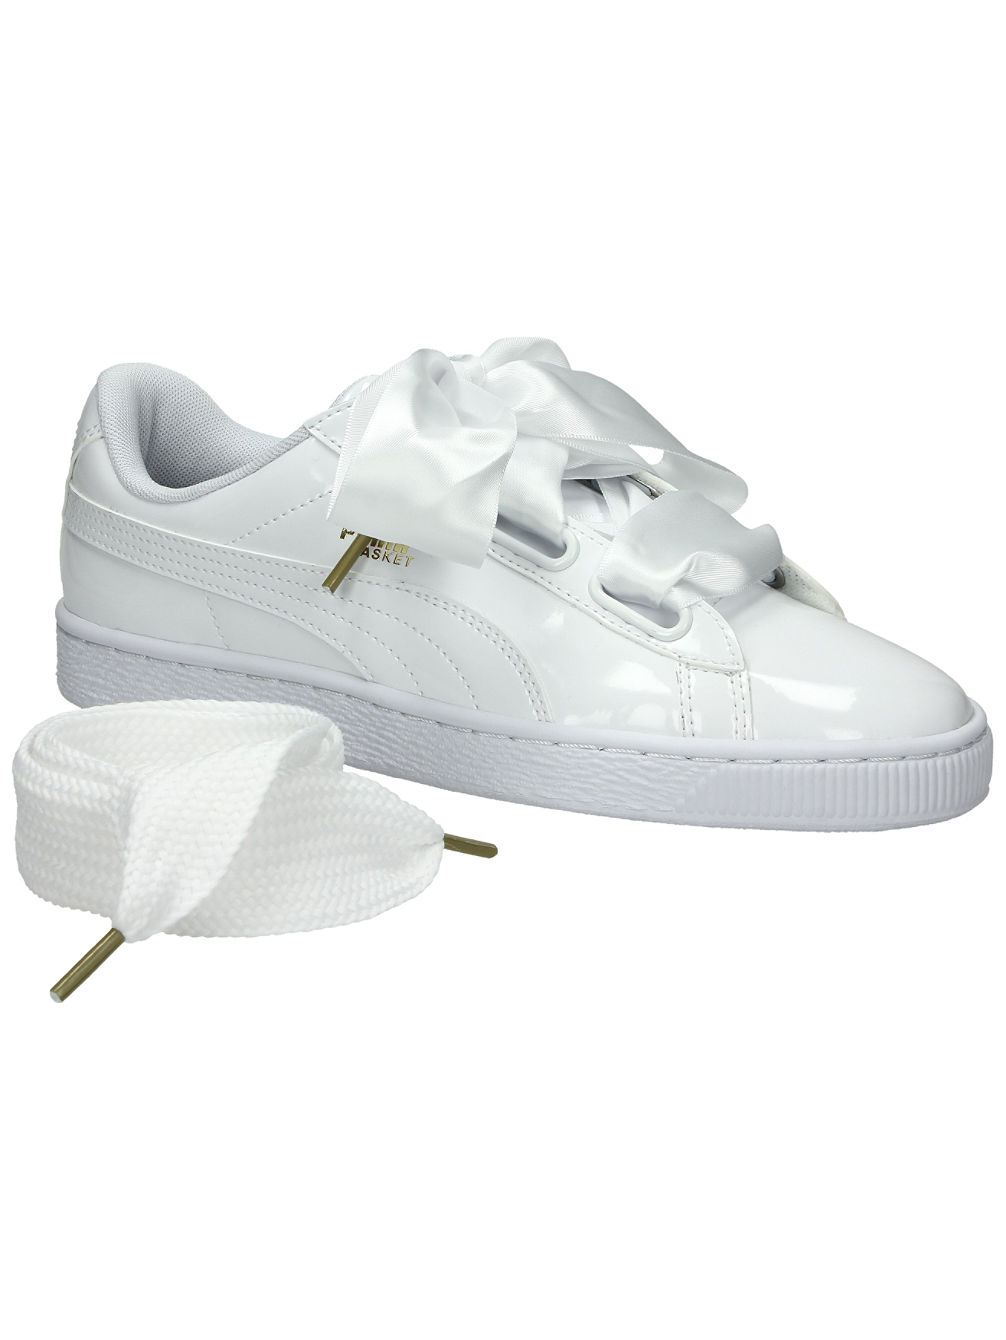 Basket Heart Patent Sneakers Women